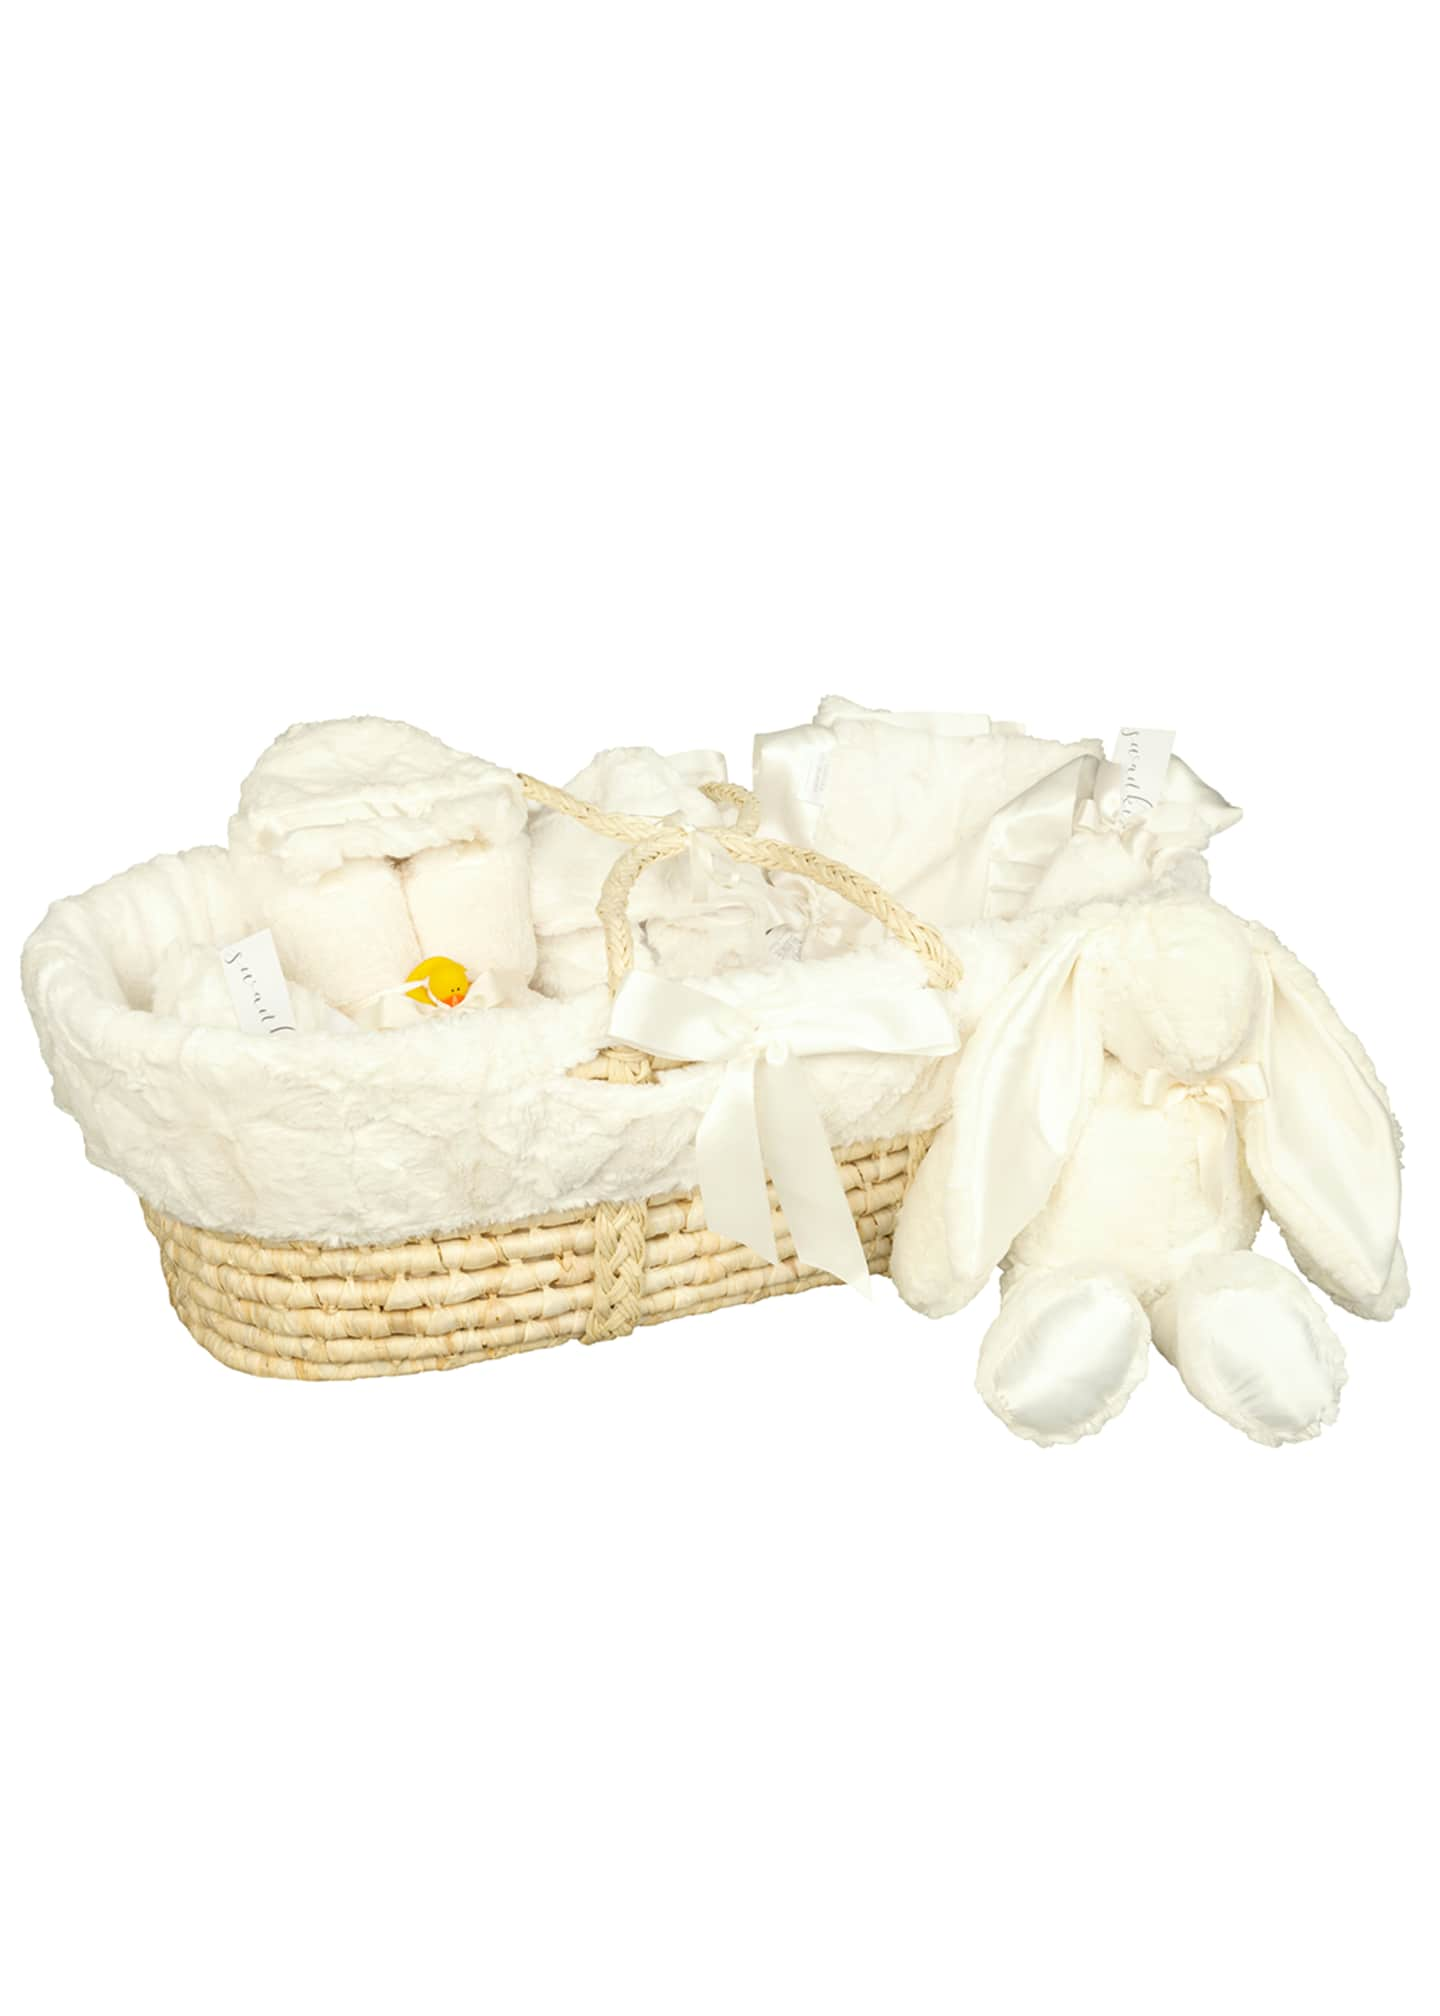 Image 3 of 3: Carter Moses Gift Basket